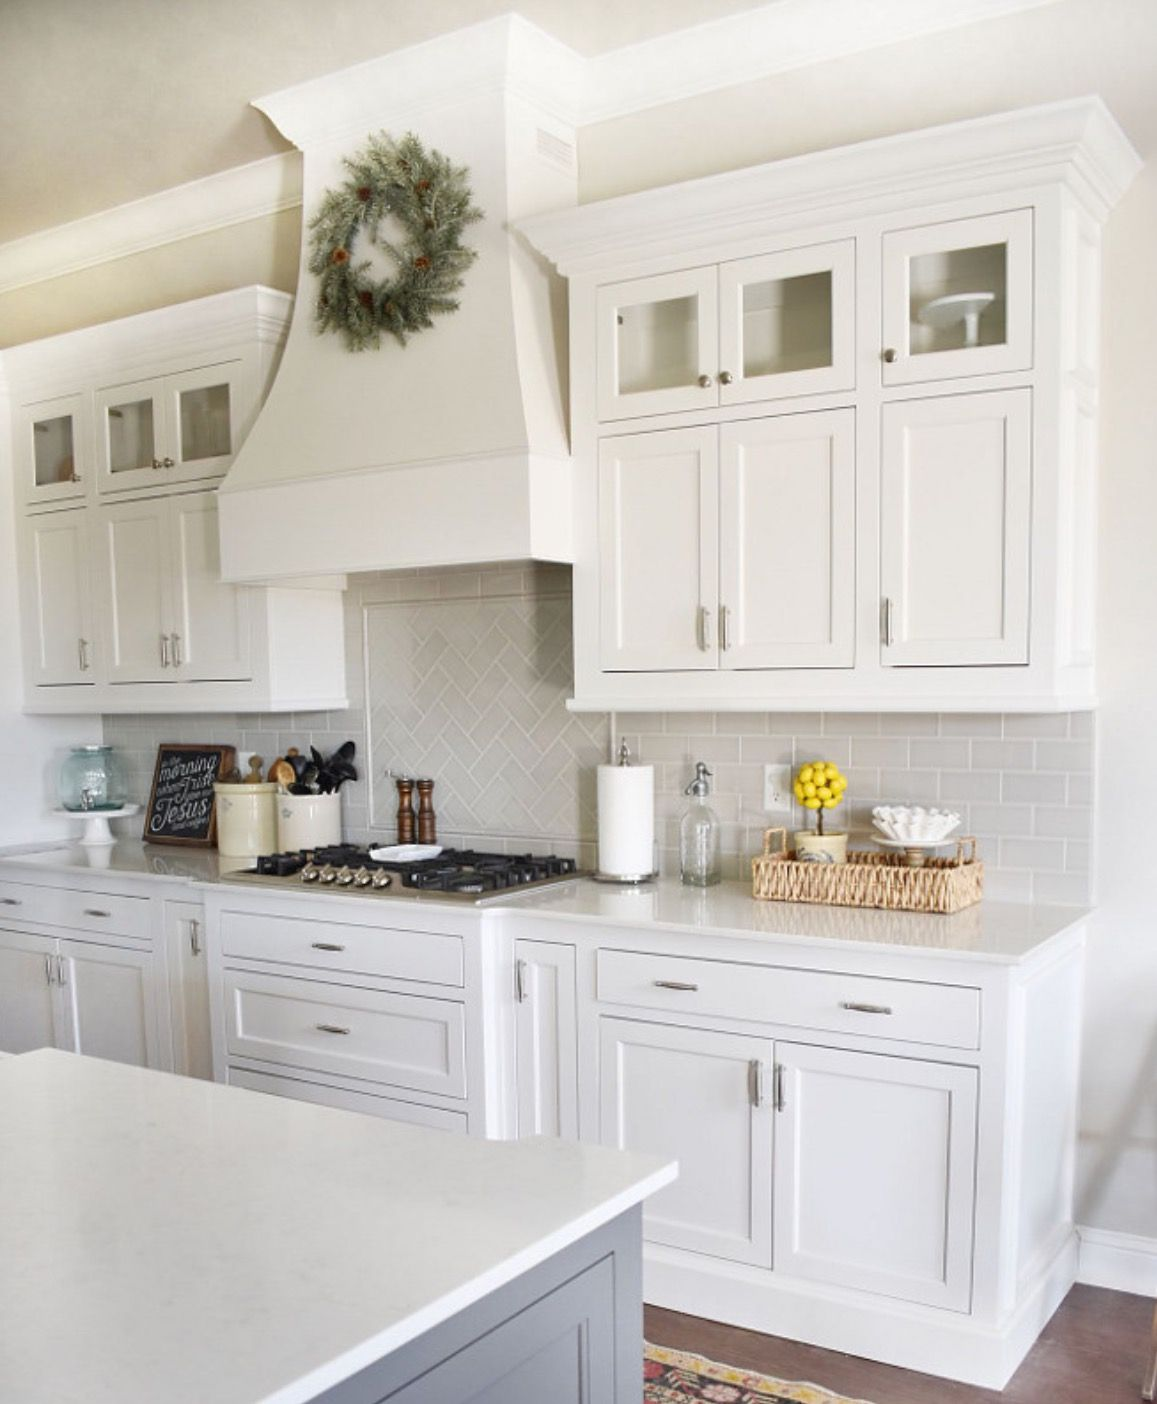 White Kitchen Cabinets Images: White Kitchen With Glass Inserts In Upper Cabinets